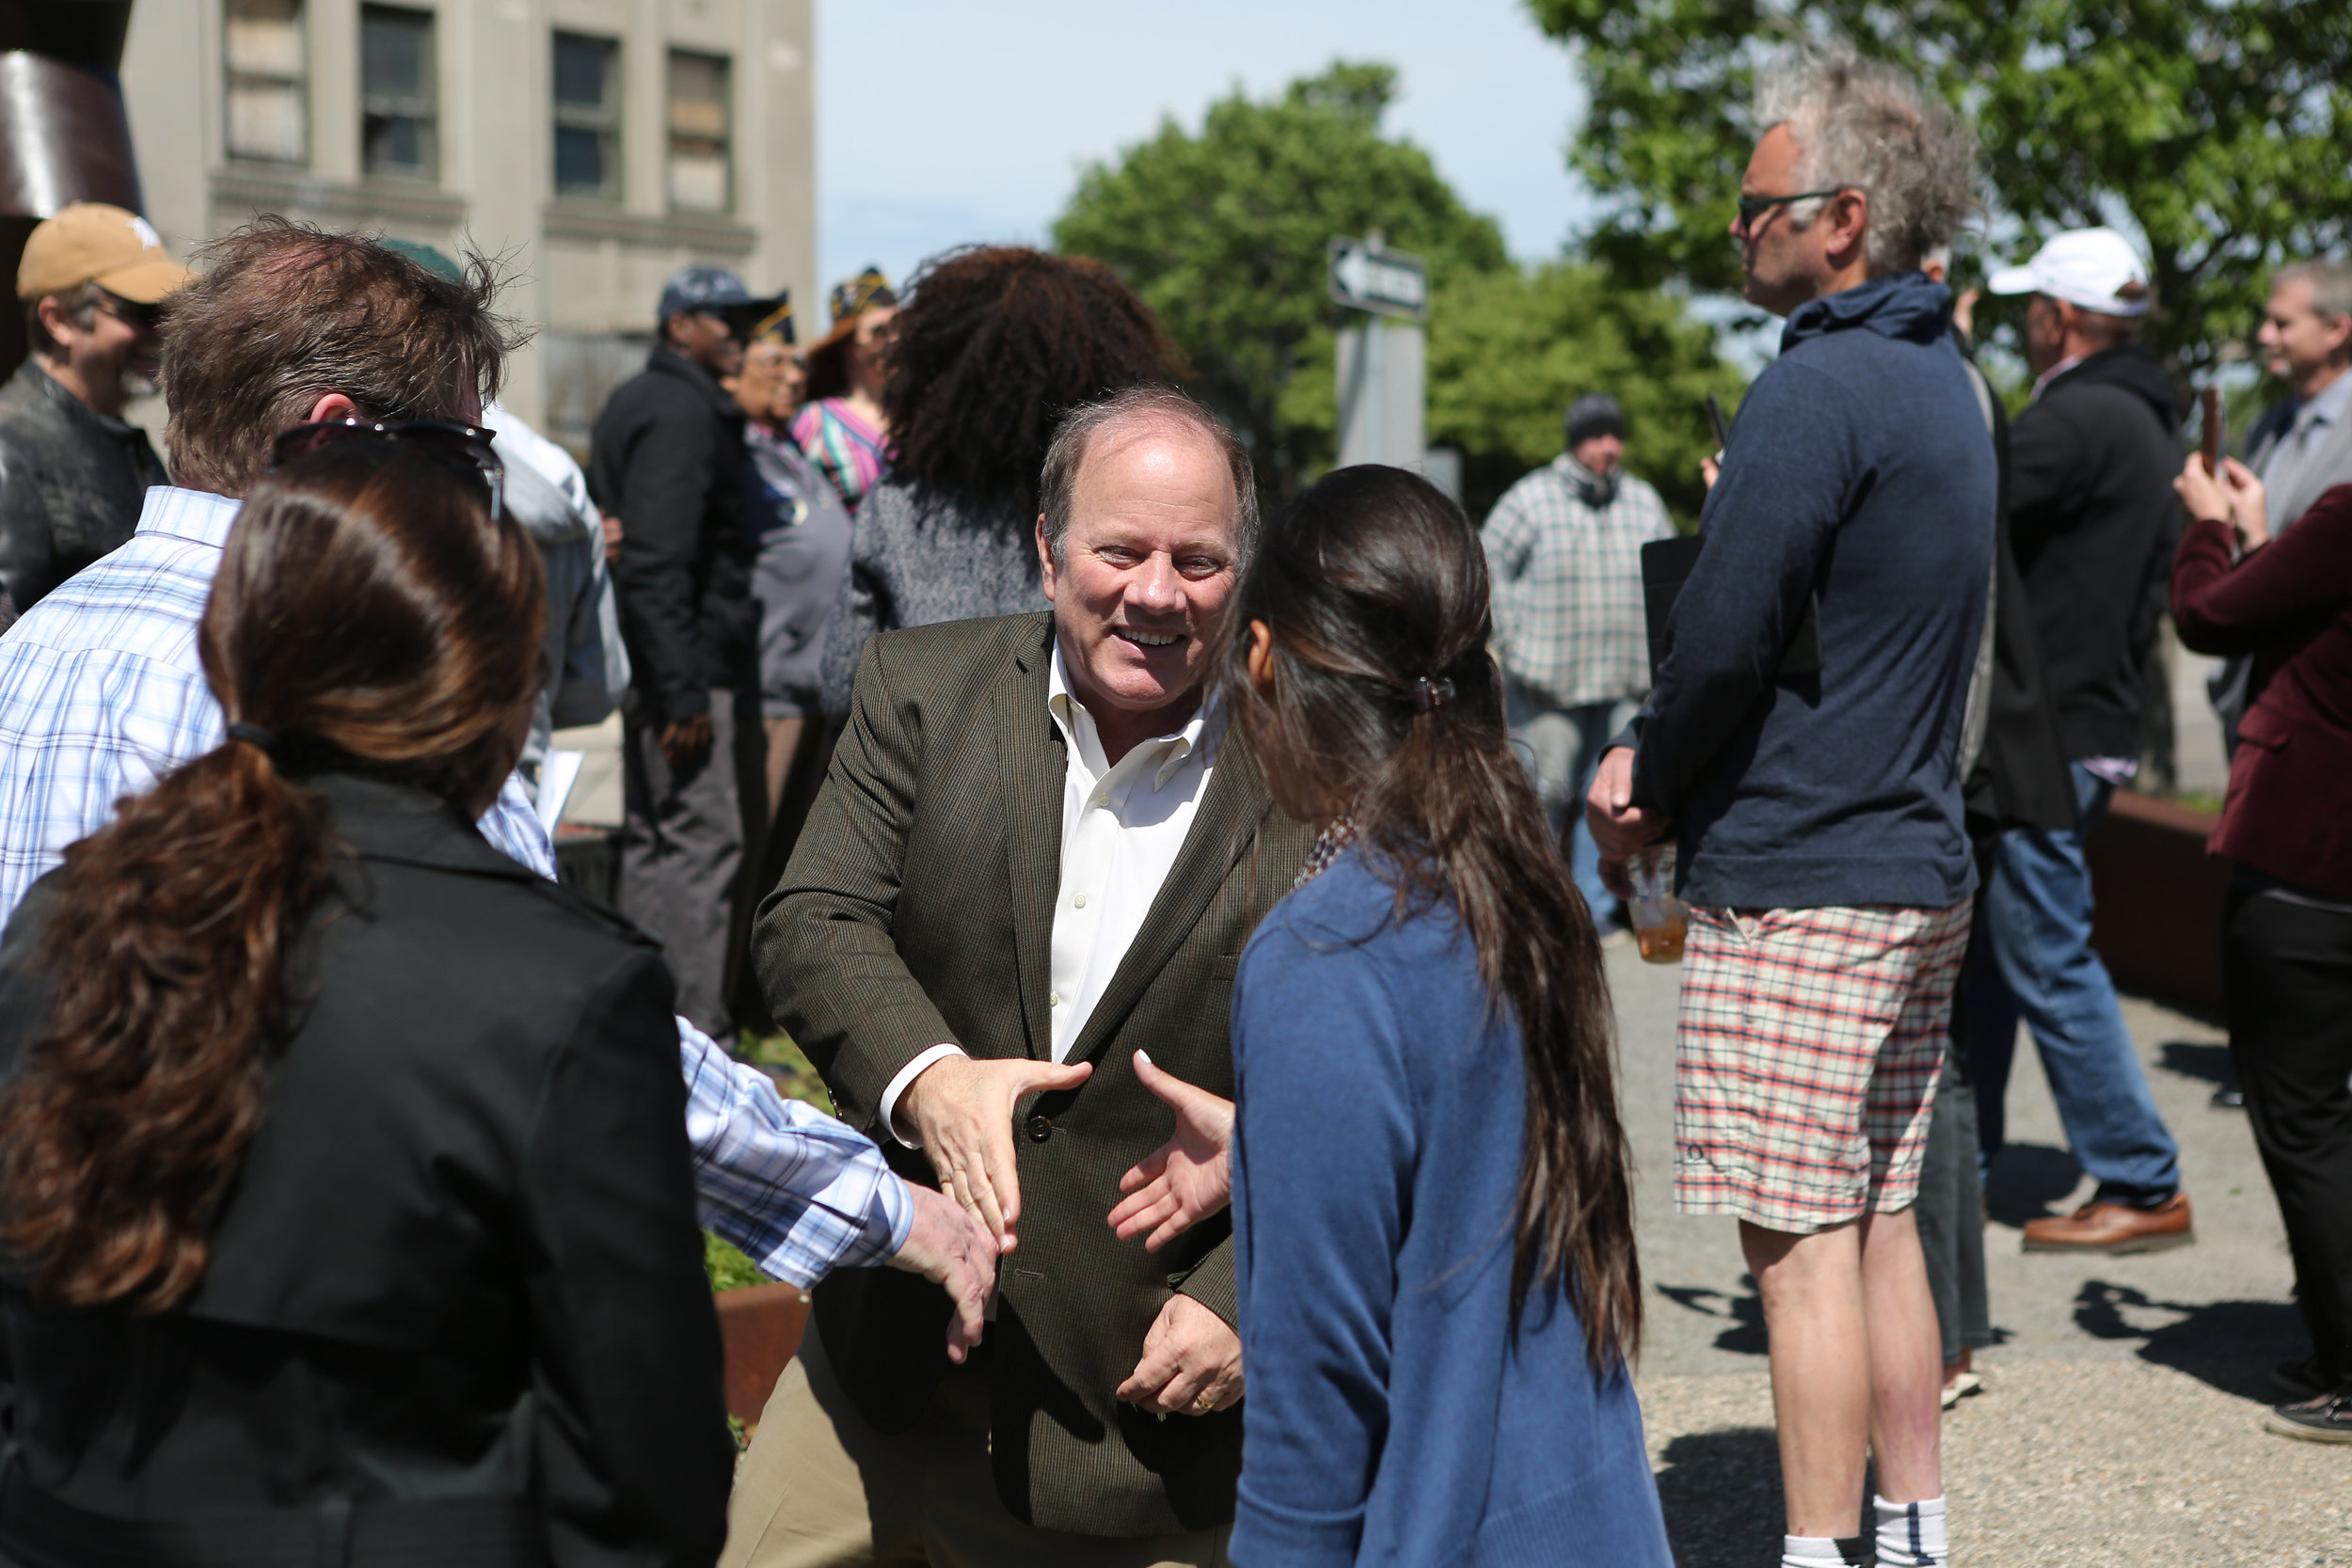 Mayor Duggan joining in the Inaugral Spring Into Corktown festivities / Spring 2017 / Photo by  Sarah Barthlow